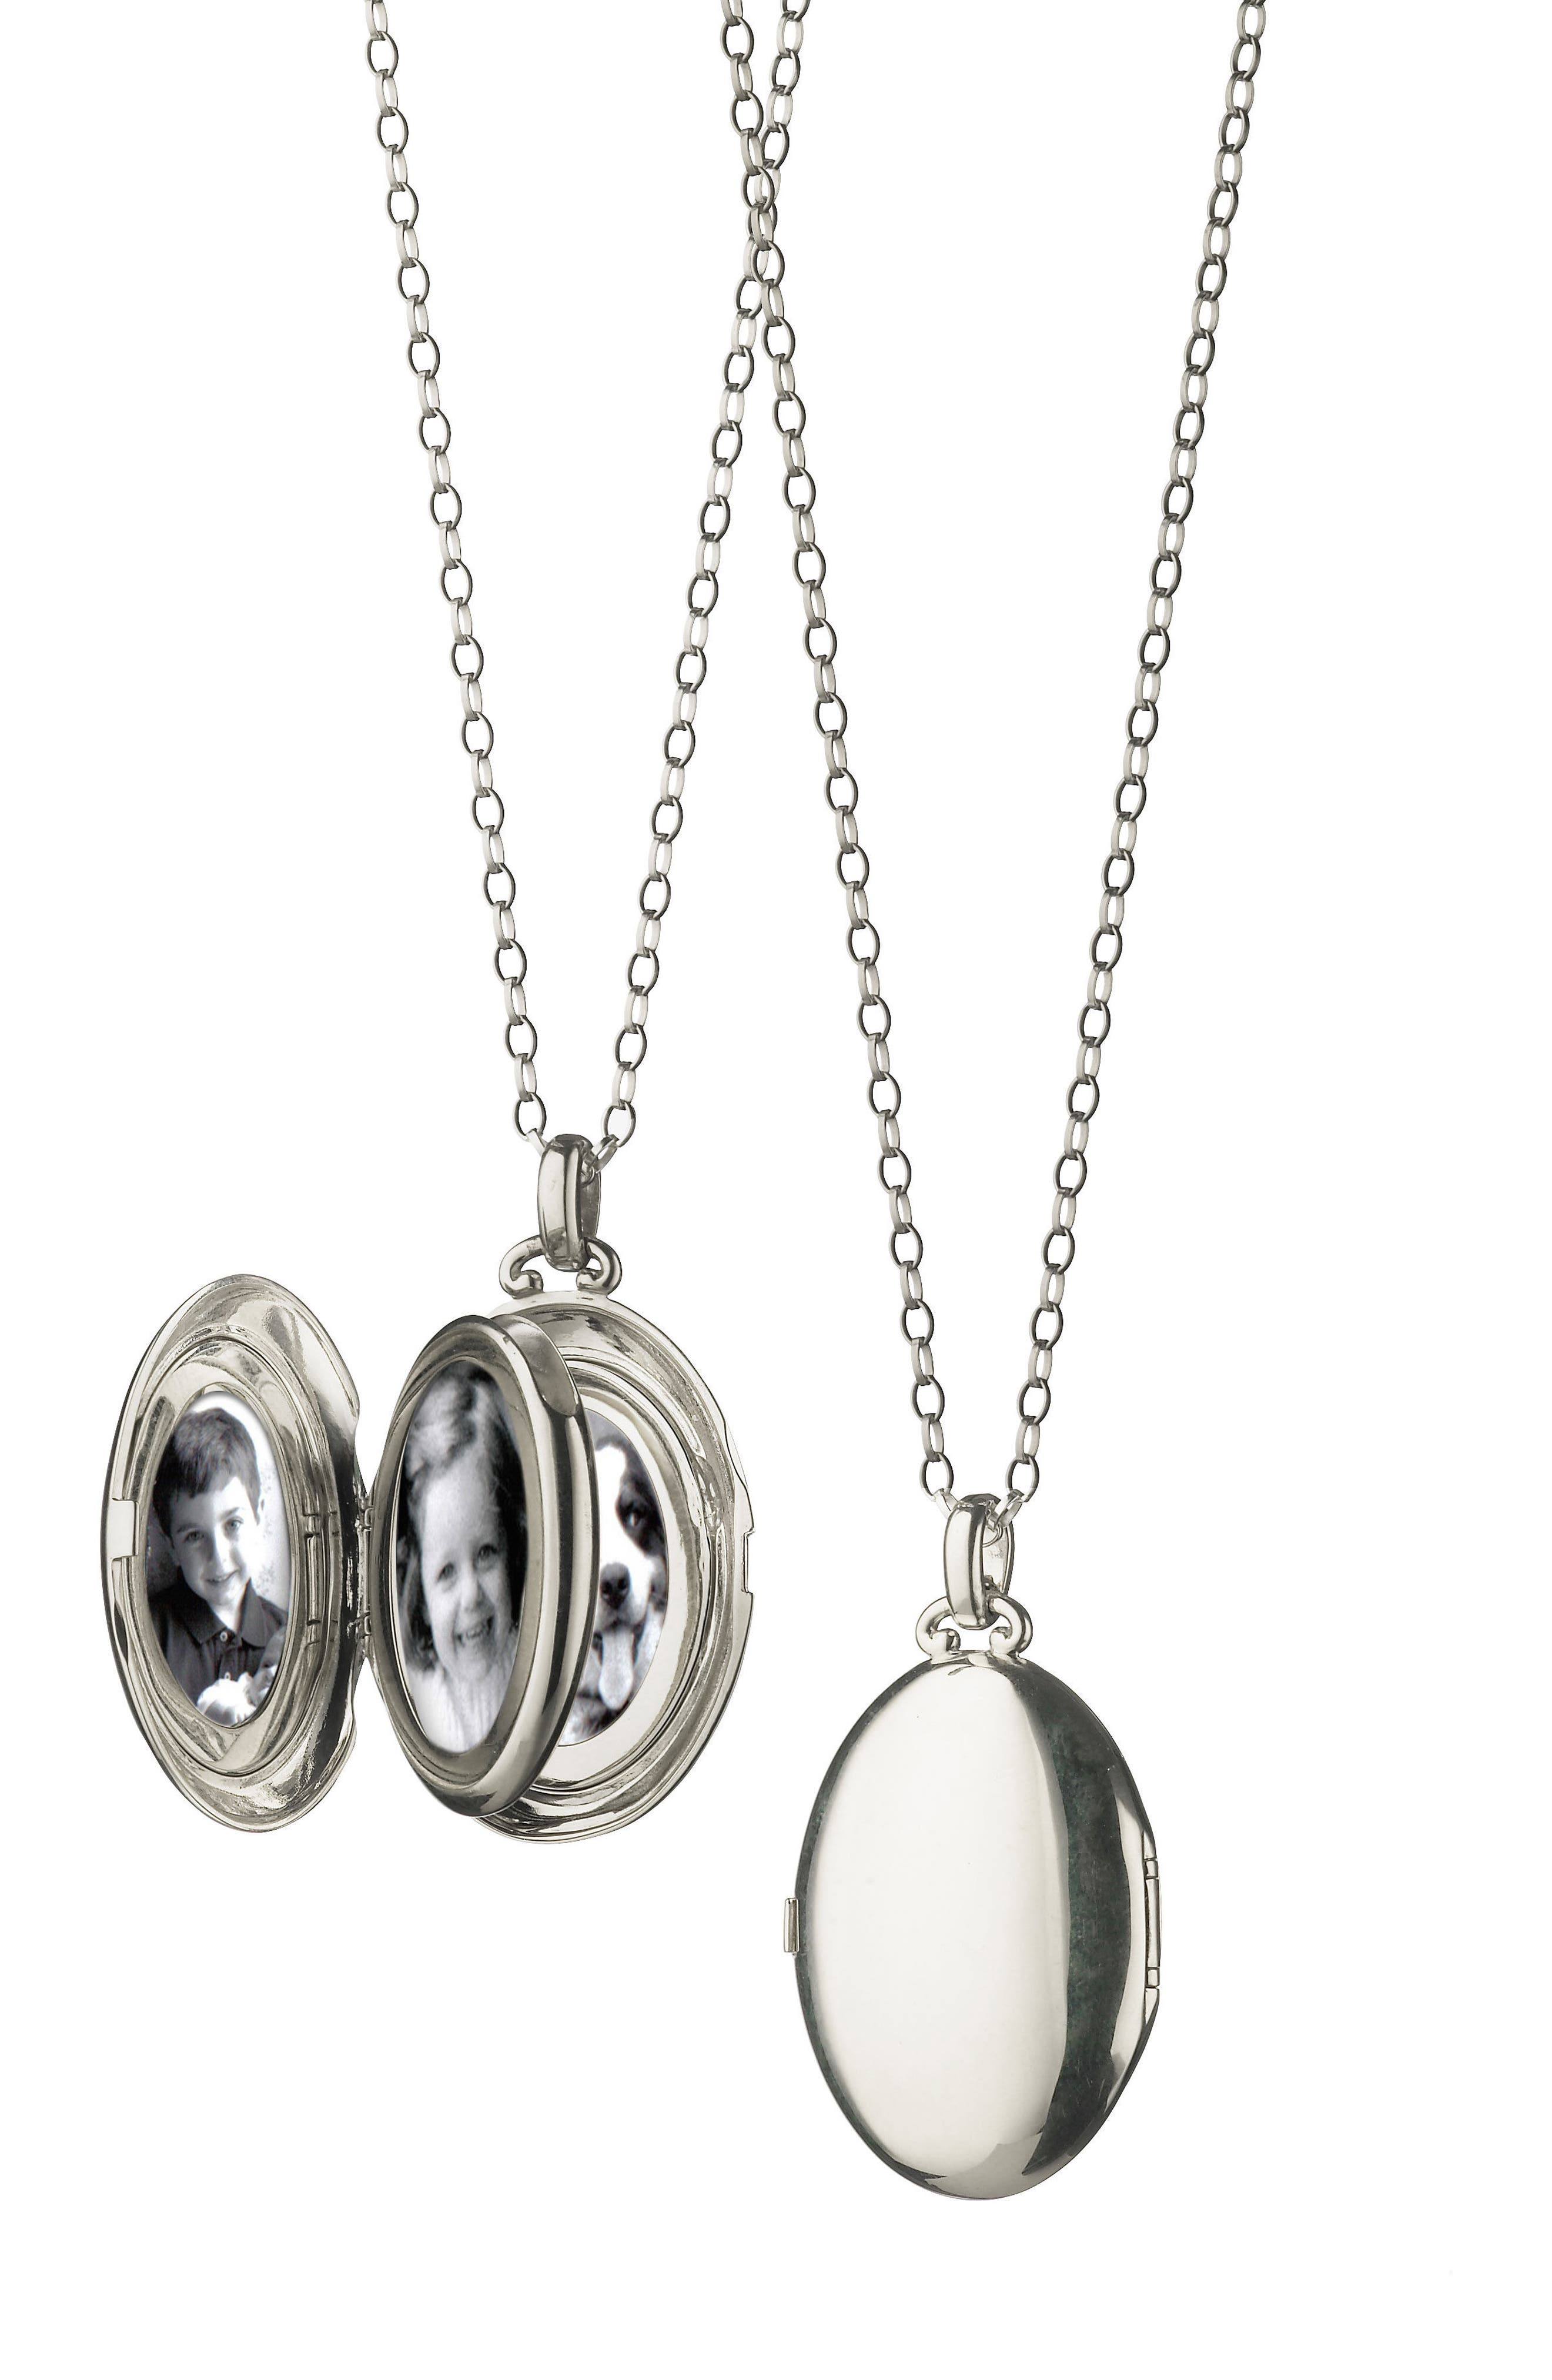 Four Image Oval Locket Necklace,                             Main thumbnail 1, color,                             Sterling Silver